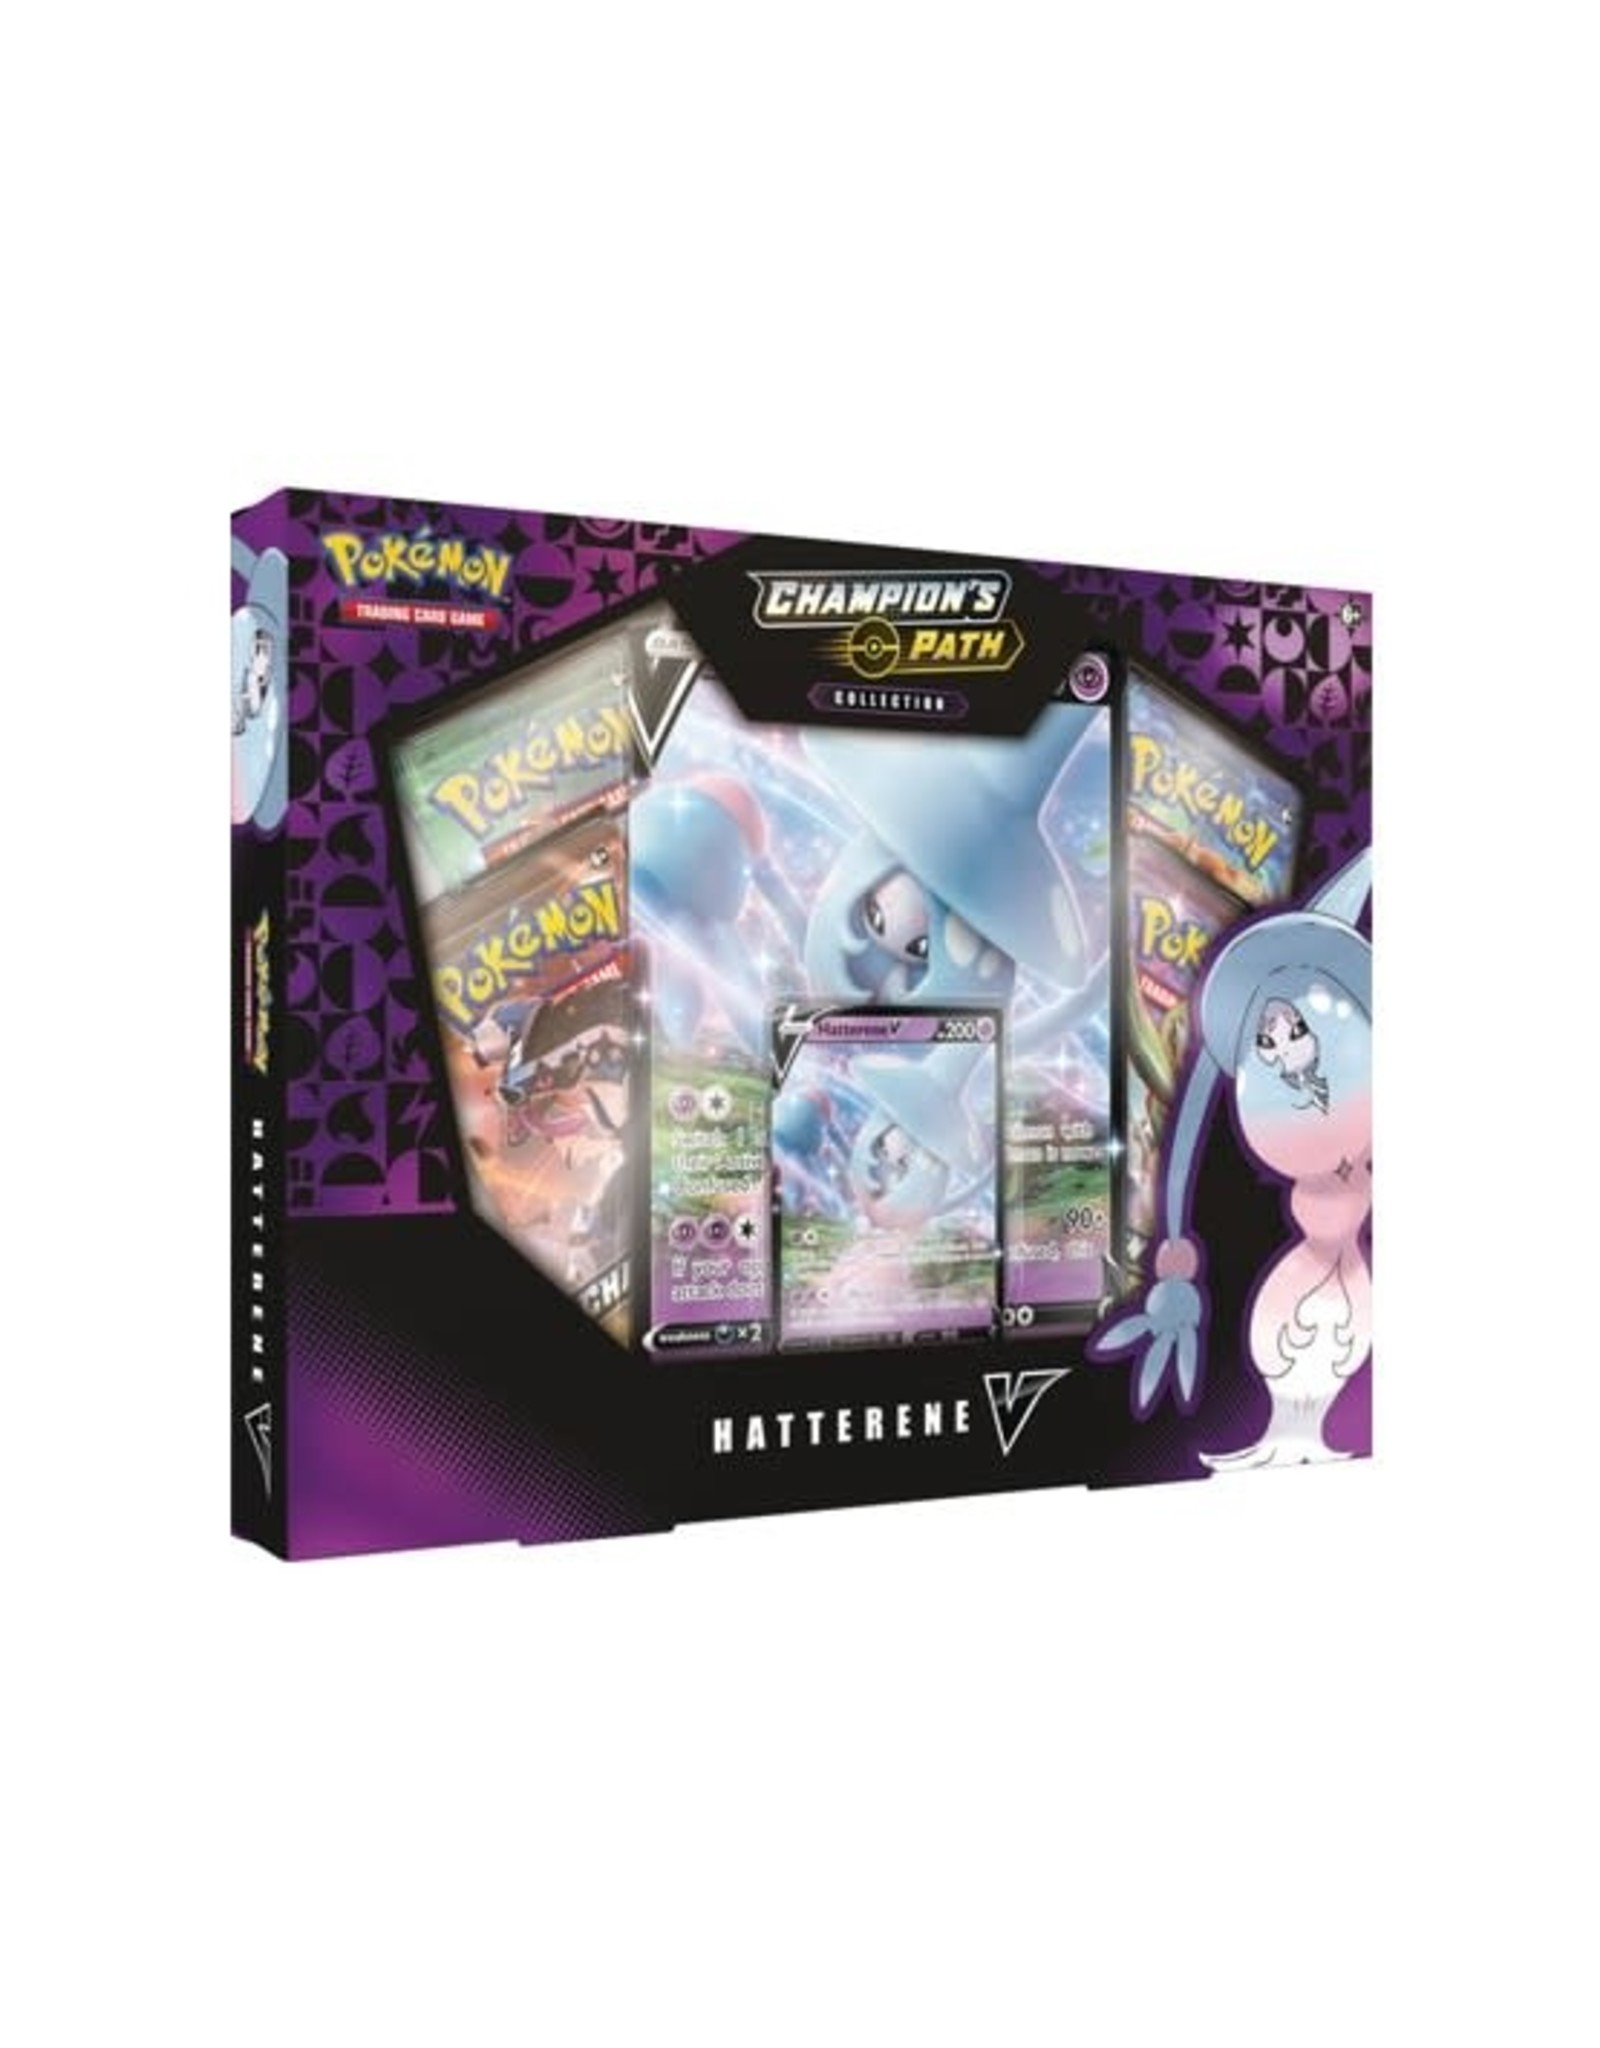 Pokemon Champions Path Hatterene V Collection